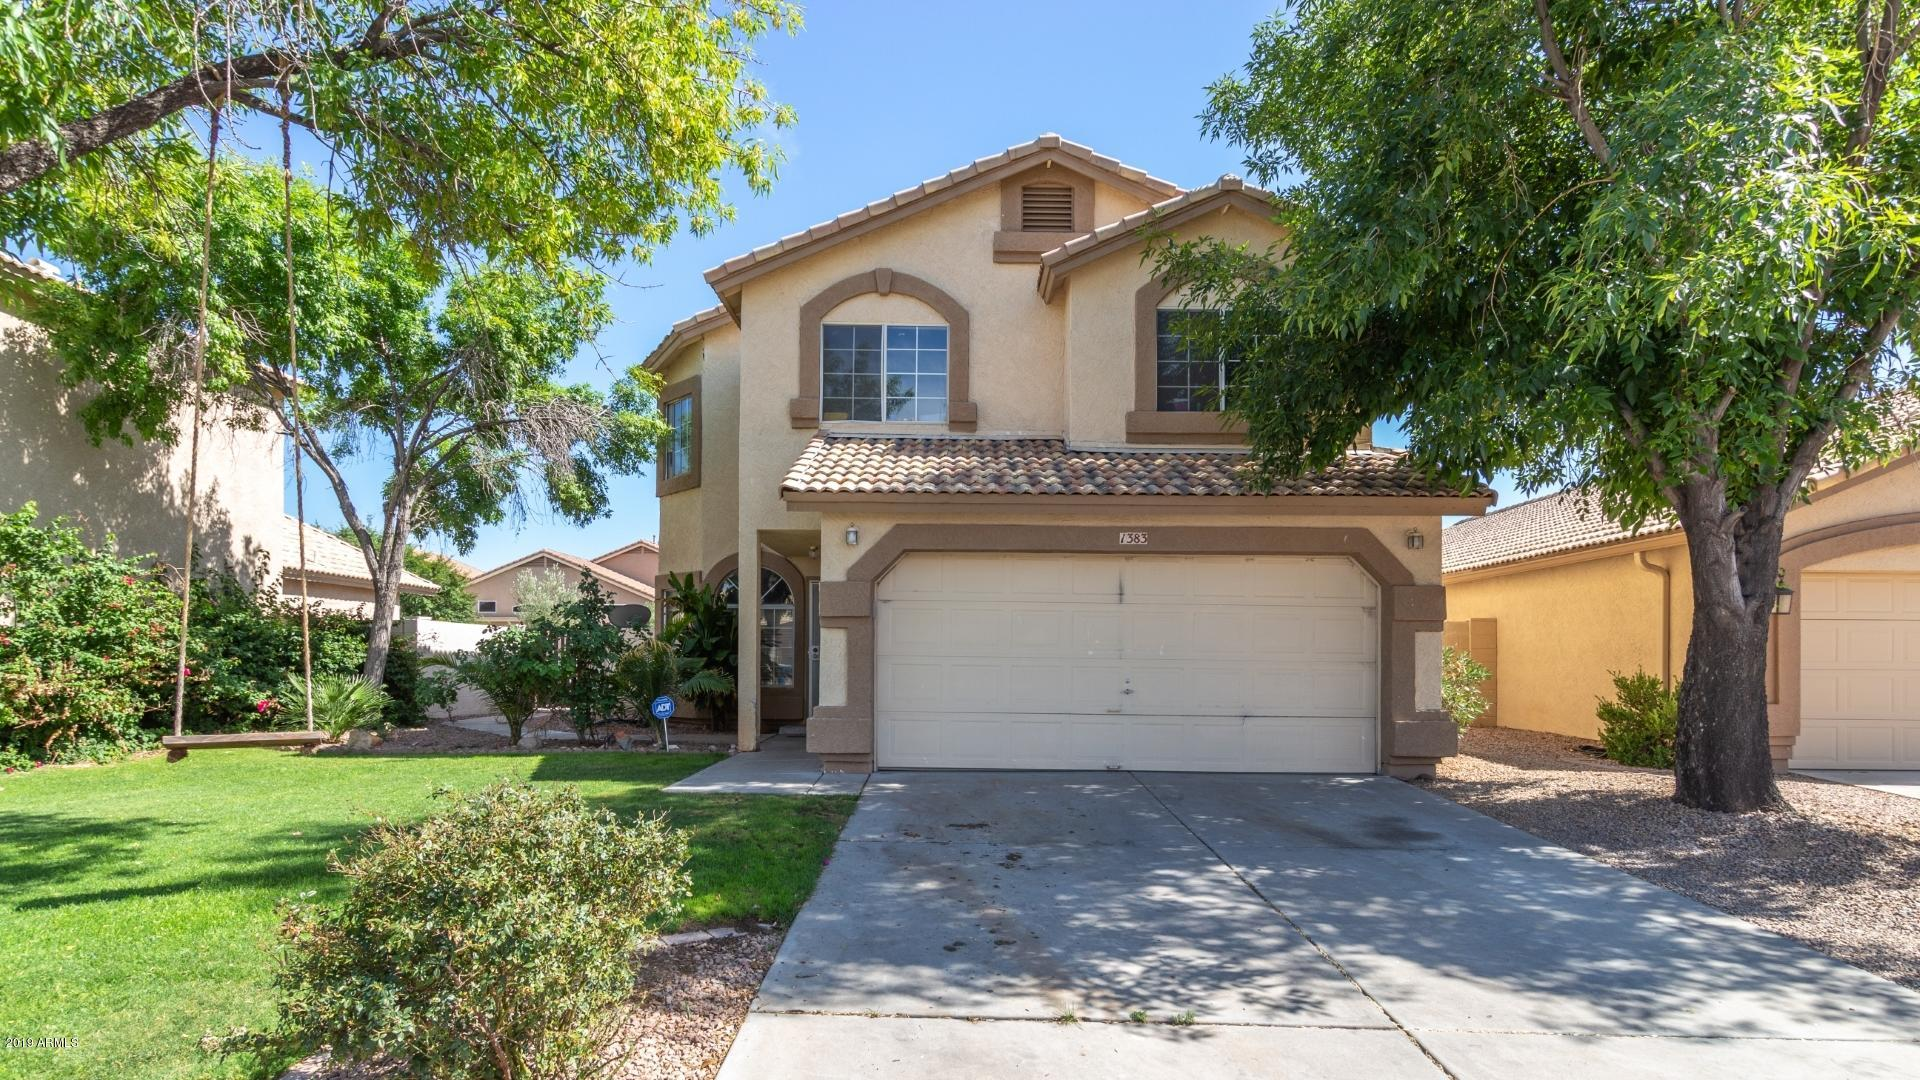 Photo of 1383 W GLENMERE Drive, Chandler, AZ 85224